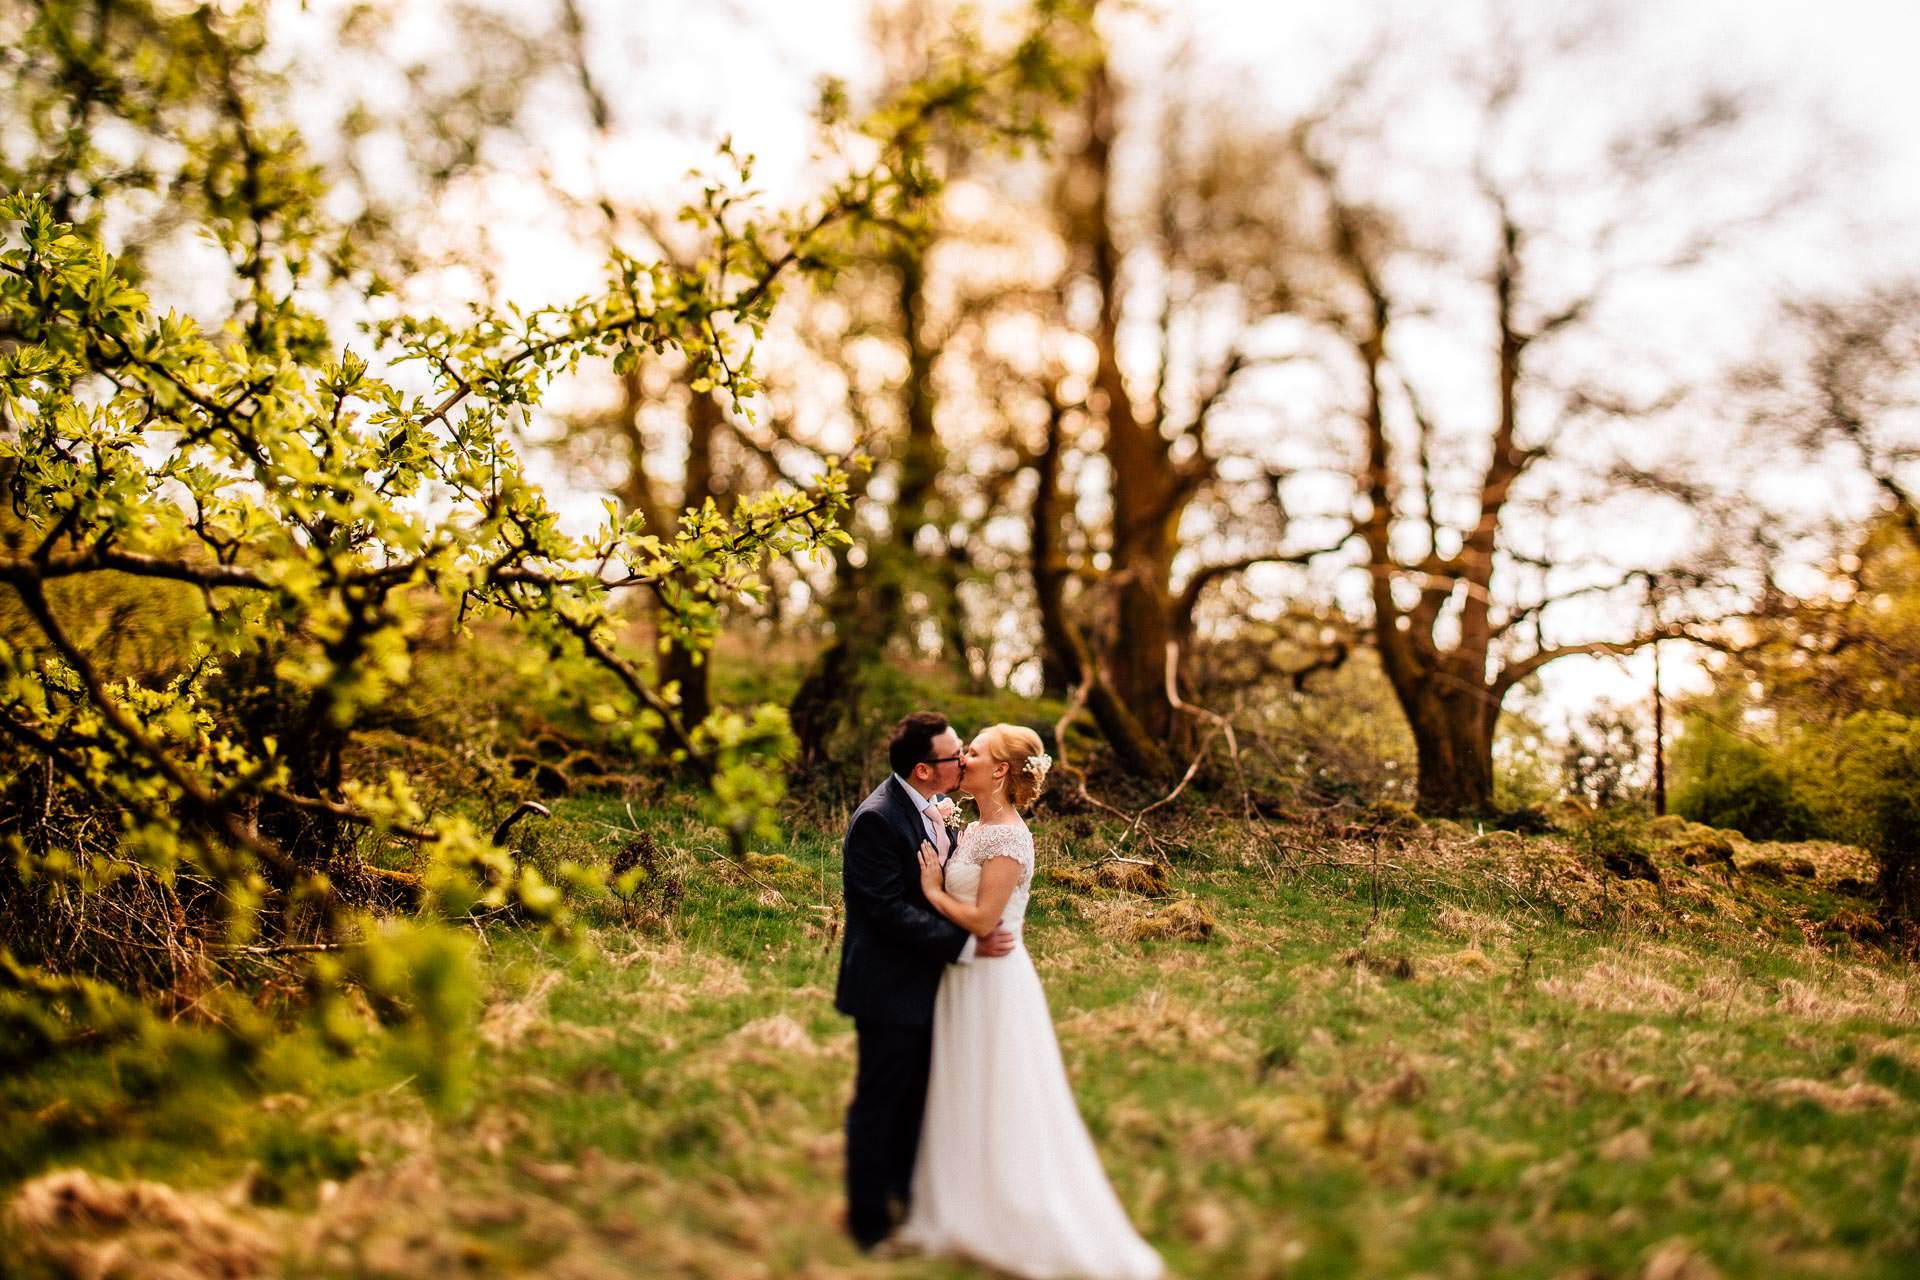 The Wild Boar Wedding Photography - EM - couple kissing in the trees